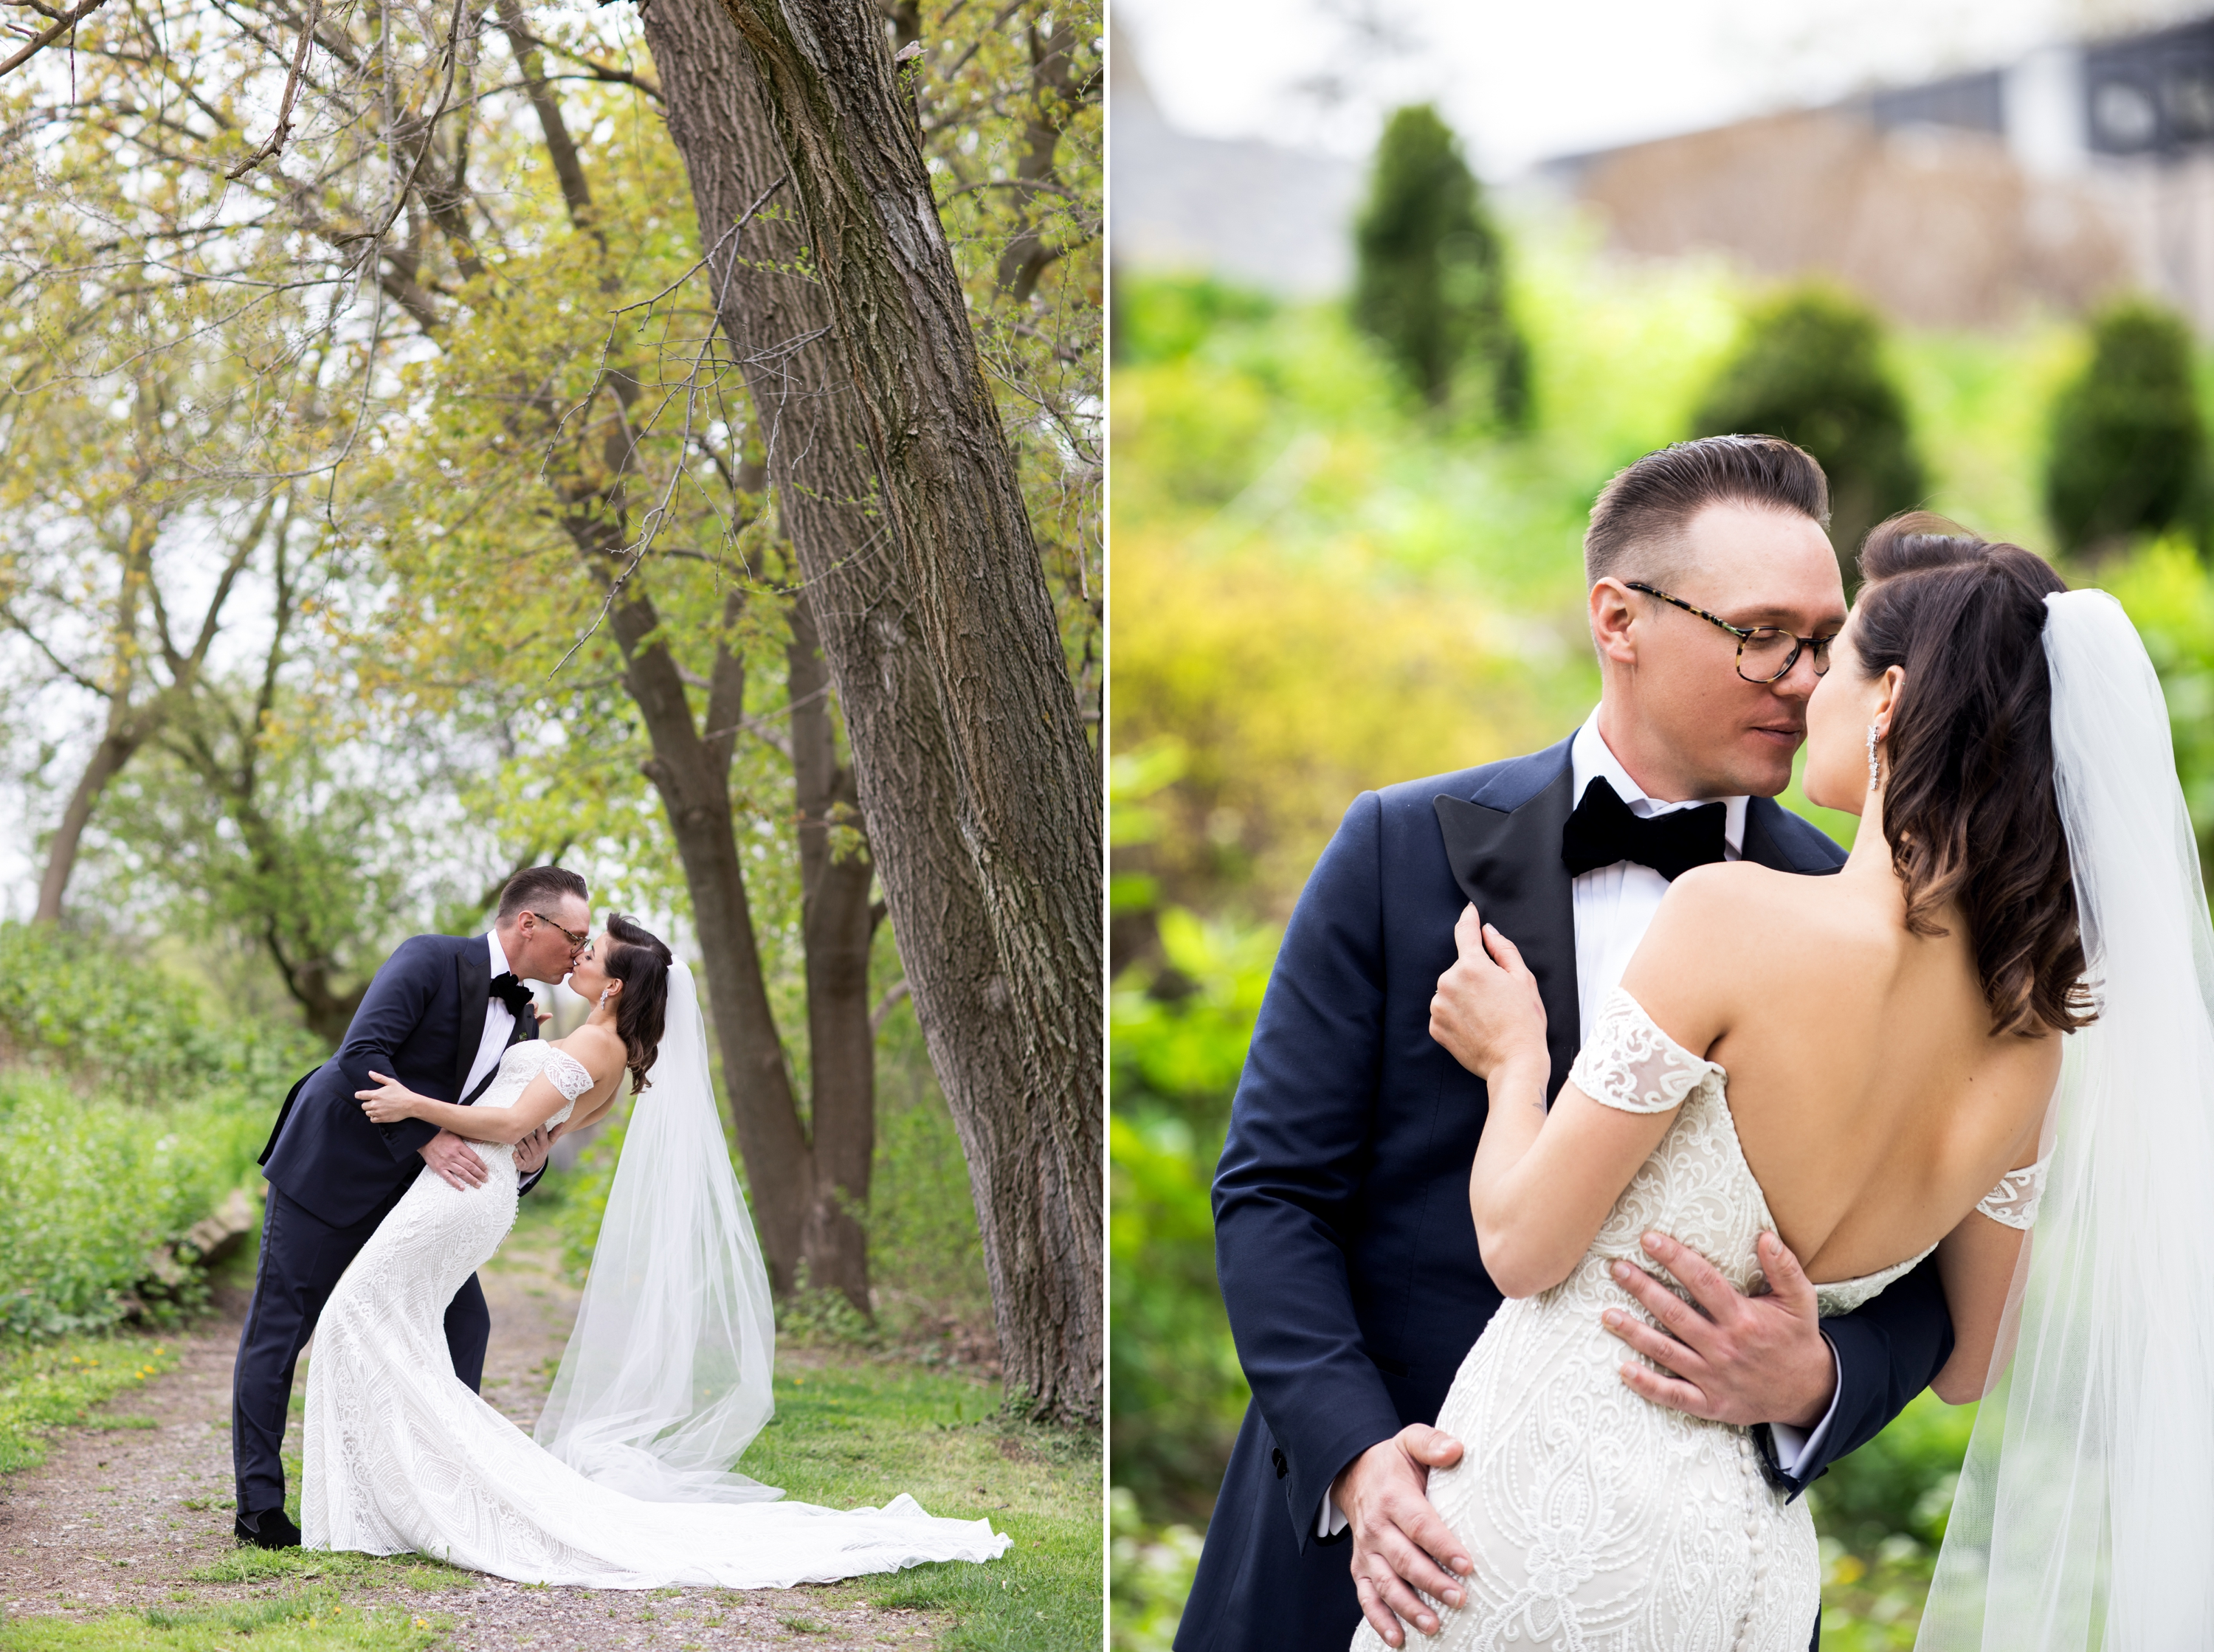 Kiss Dip Matthew Davignon Josh Zsuzsi Pal Photography Wedding Elmhurst Inn Studio Lumen